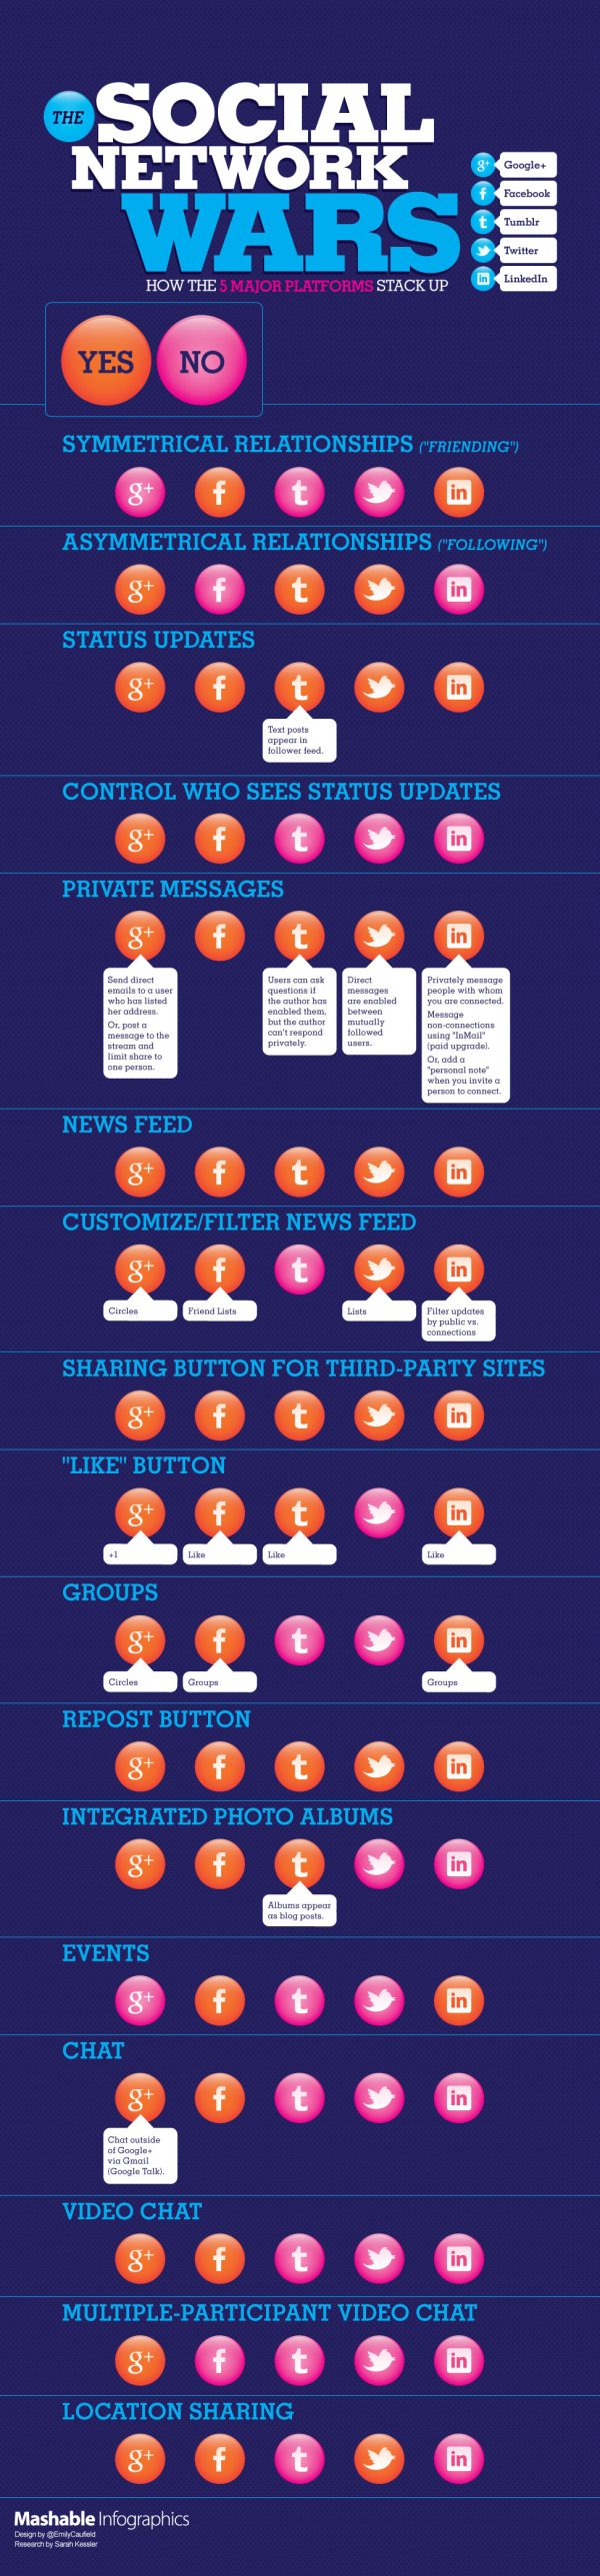 social network comparison mashable infographics resized 600